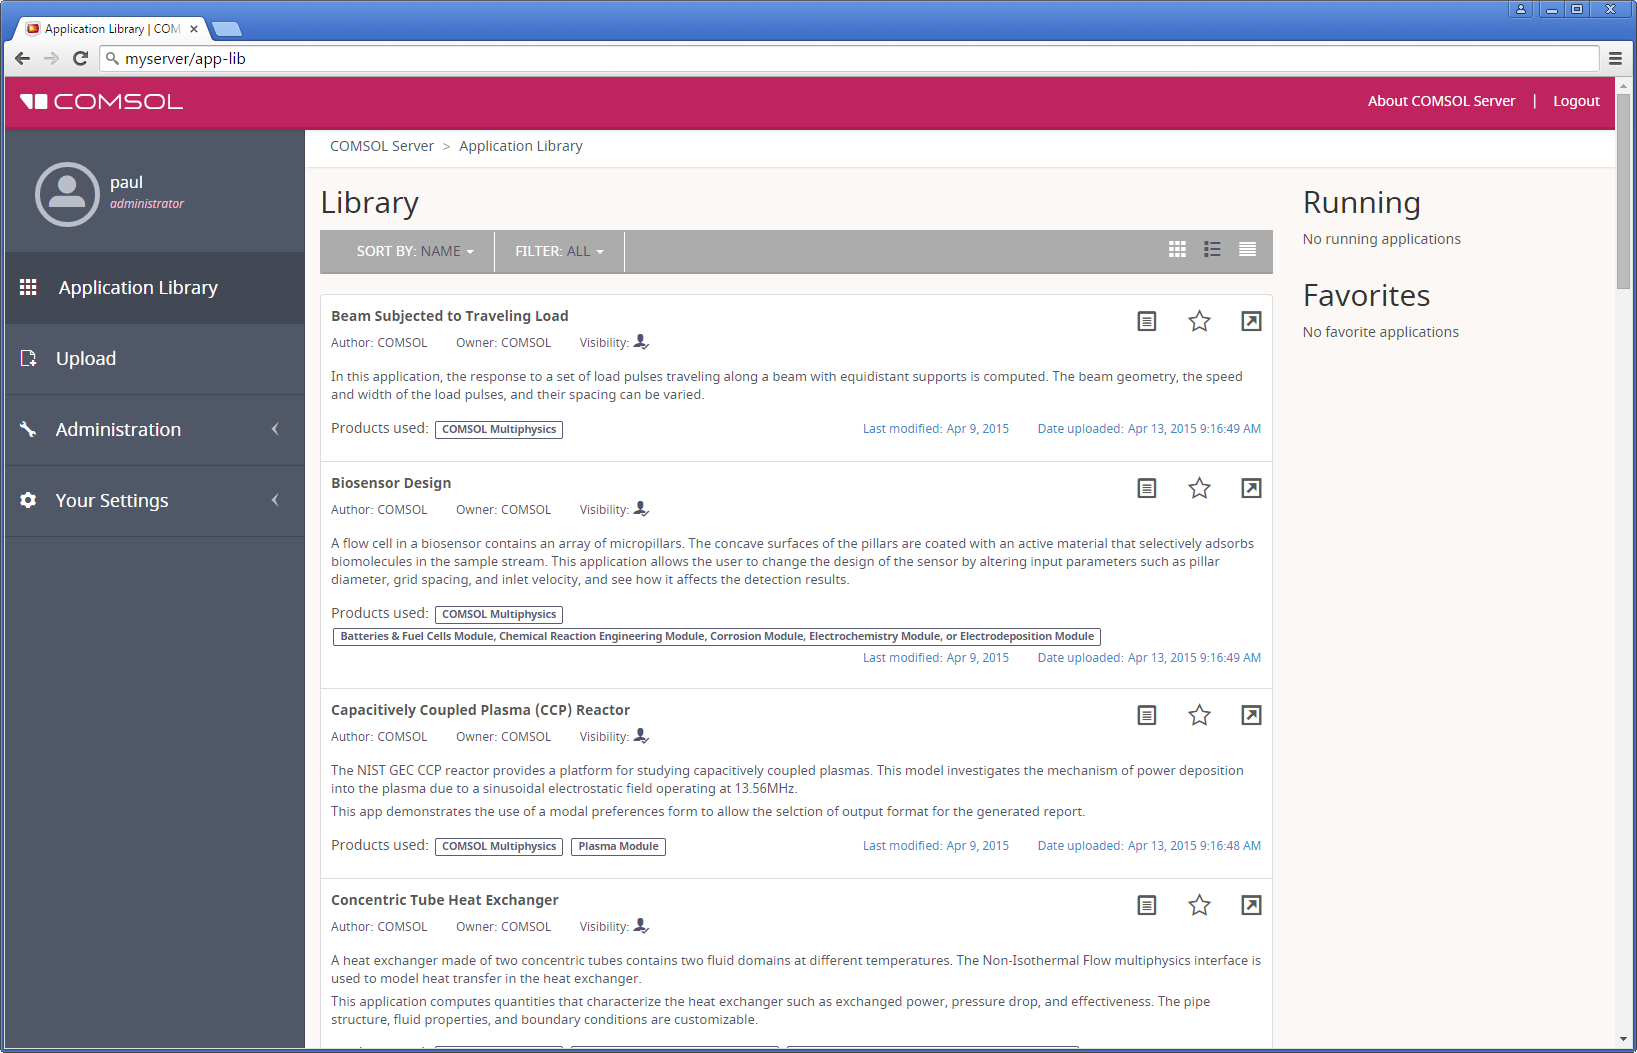 A screenshot of the COMSOL Server Application Library.